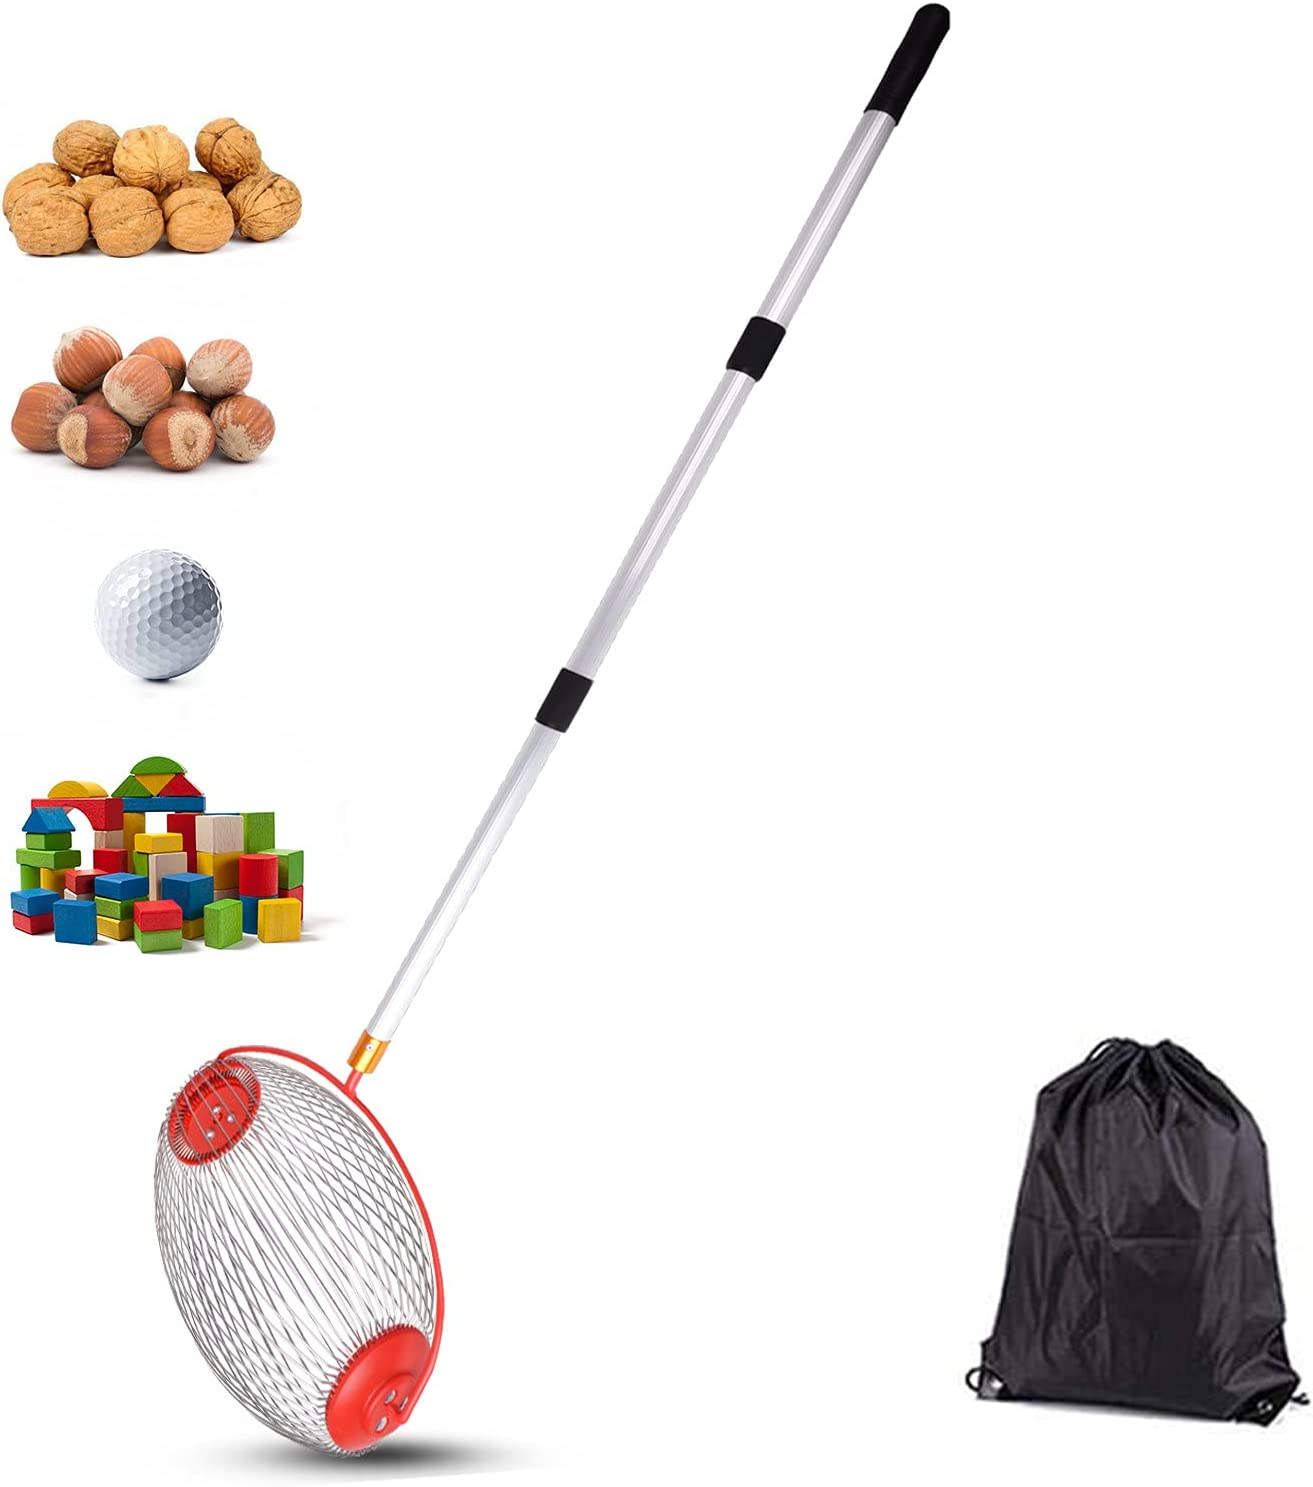 VEDOSRE Large Nut Gatherer Rolling Nut Harvester Ball Picker Adjustable Outdoor Manual Tools Picker Collector Walnuts Pecans Golf Nerf Darts and Ball 1'' to 3'' in Size (14.6in)